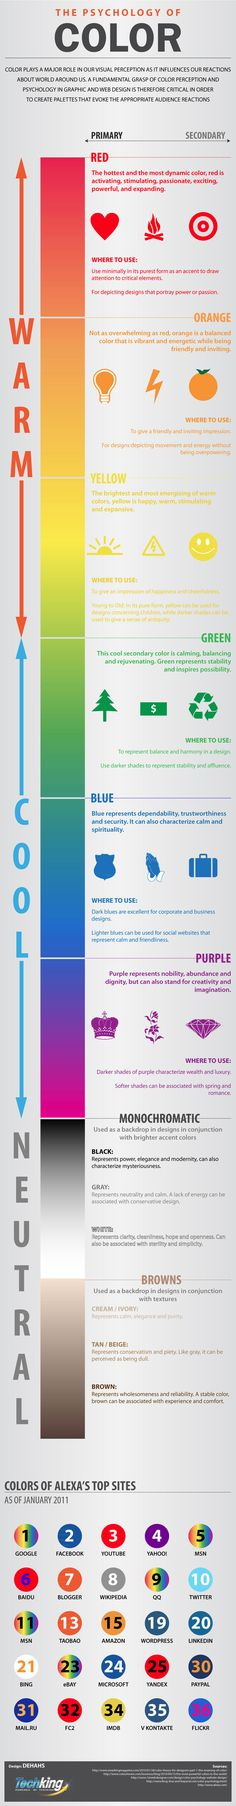 The Psychology of Color. RED is activating, stimulating, passionate, exciting, powerful, and expanding. ORANGE is vibrant, energetic, friendly, and inviting. YELLOW is happy, warm, stimulating, and expansive. GREEN is calming, balancing, and rejuvenating. BLUE is calming and friendly. PURPLE is creative, romantic, and imaginative. BLACK is mysterious.